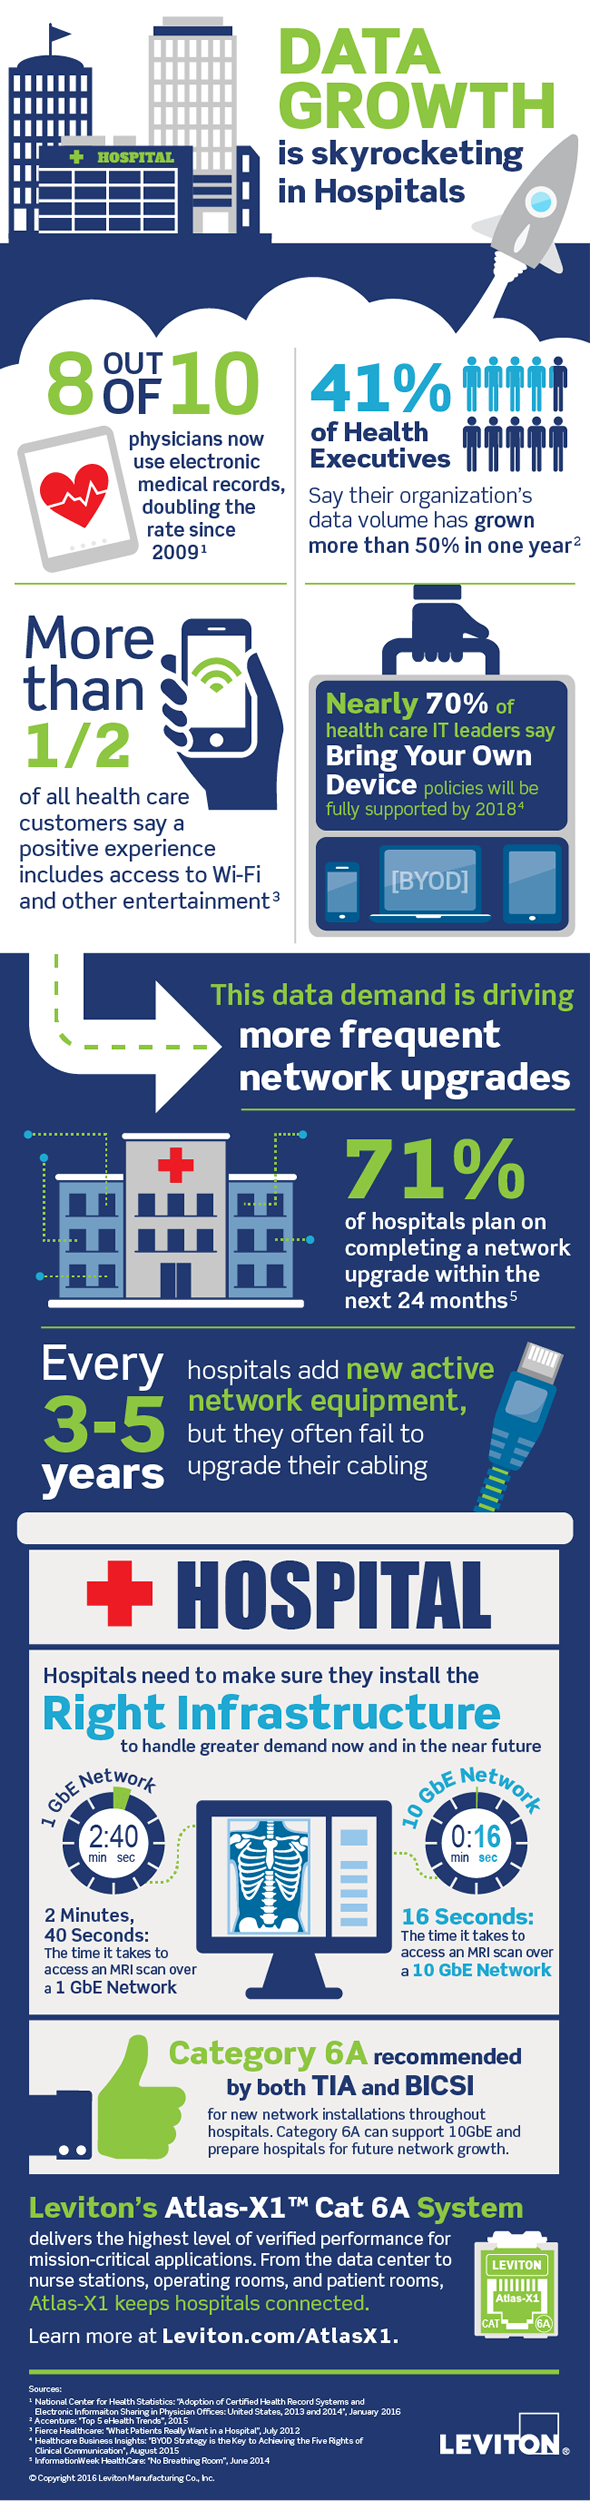 Infographic: Preparing Hospitals for Data Growth